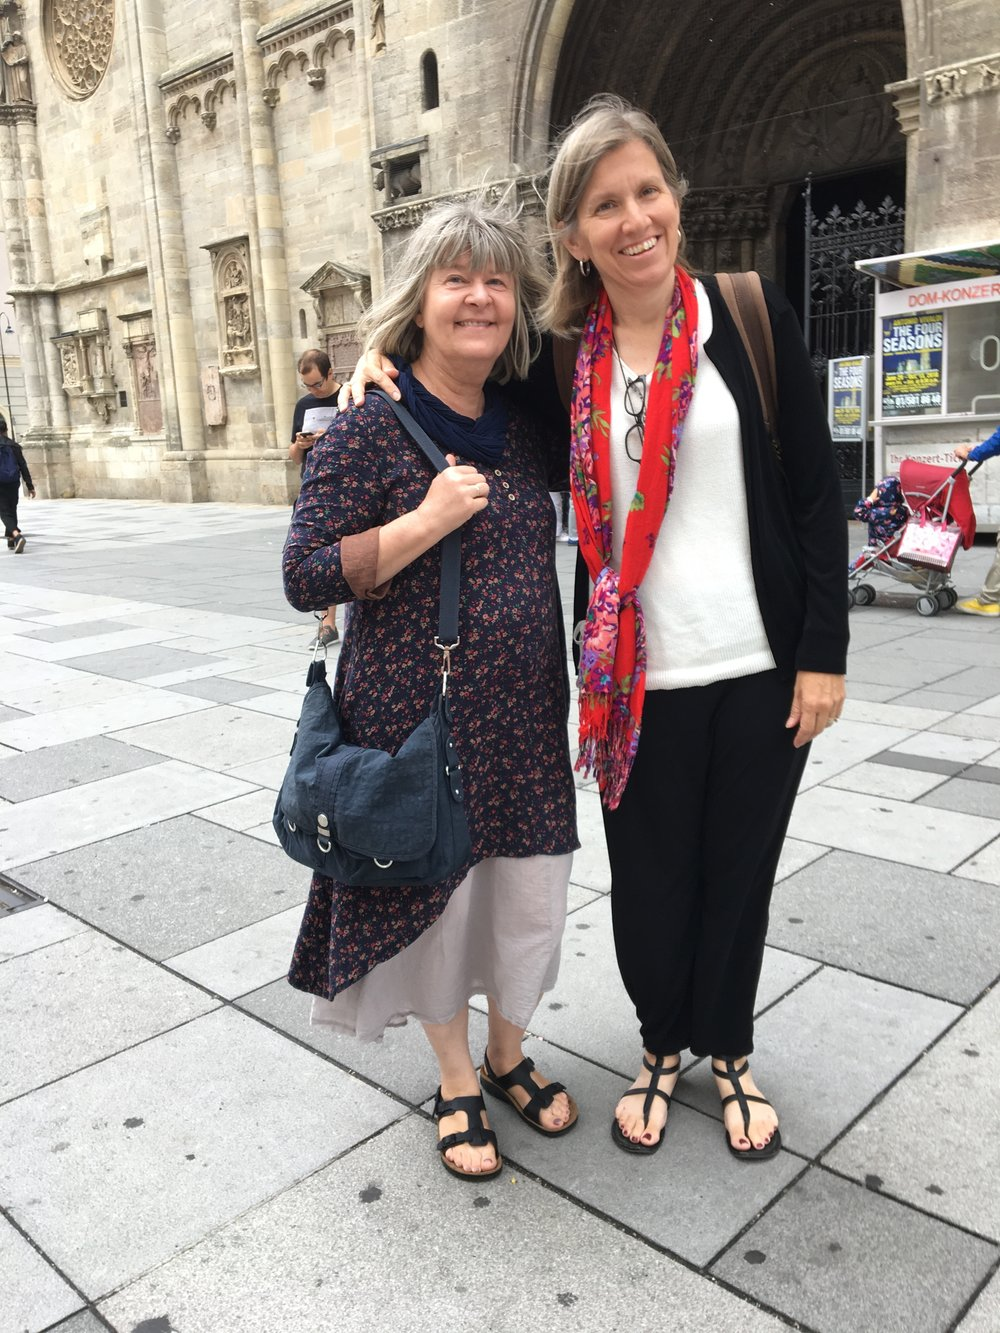 My dear friends Gaby and Caroline in front of St. Stephen's Cathedral. A true friend is one of the purest joys of this life.